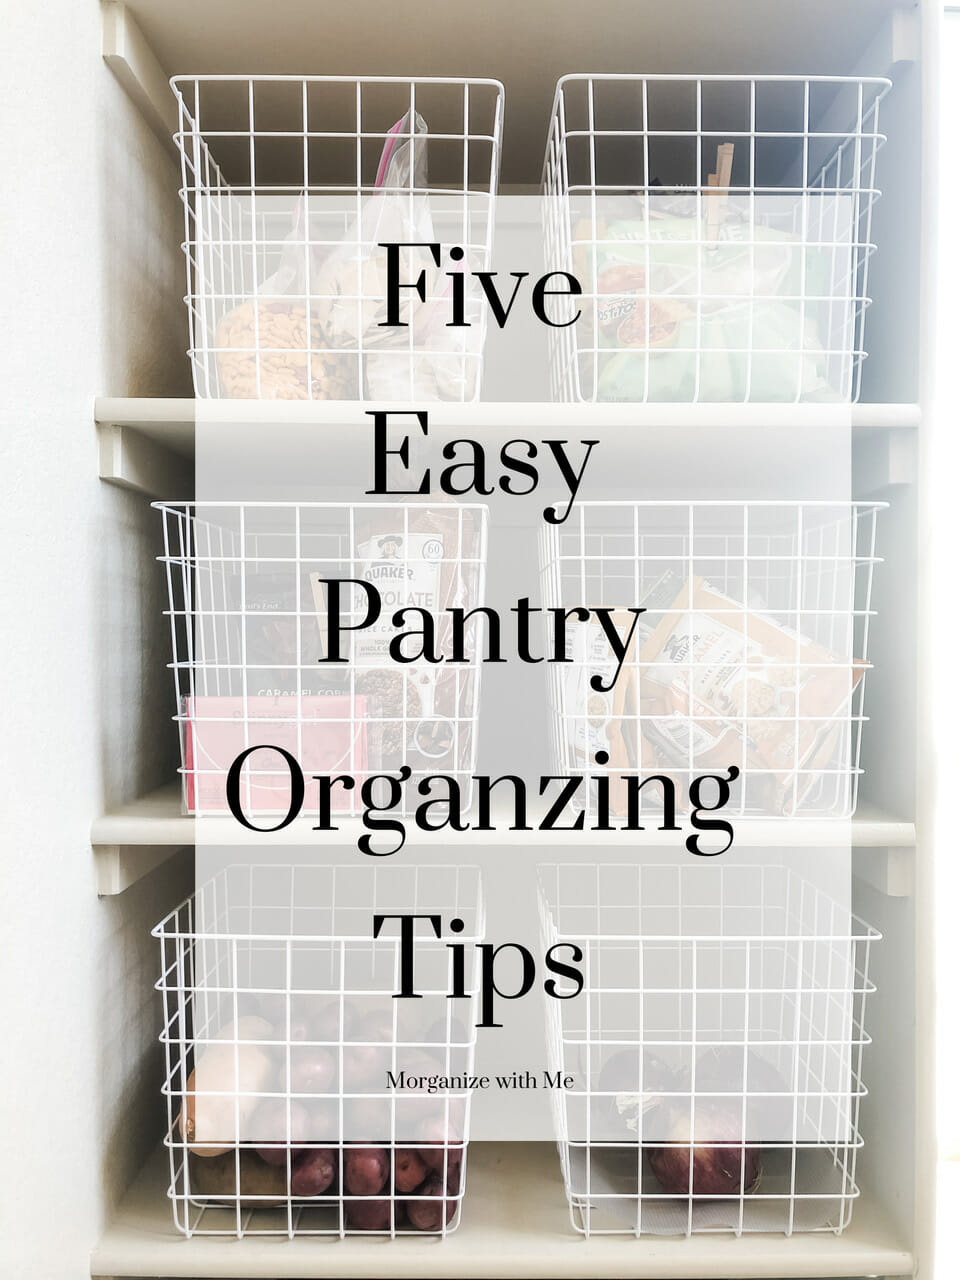 Five Easy Pantry Organizing Tips for a Pantry of Any Size at I'm an Organizing Junkie blog